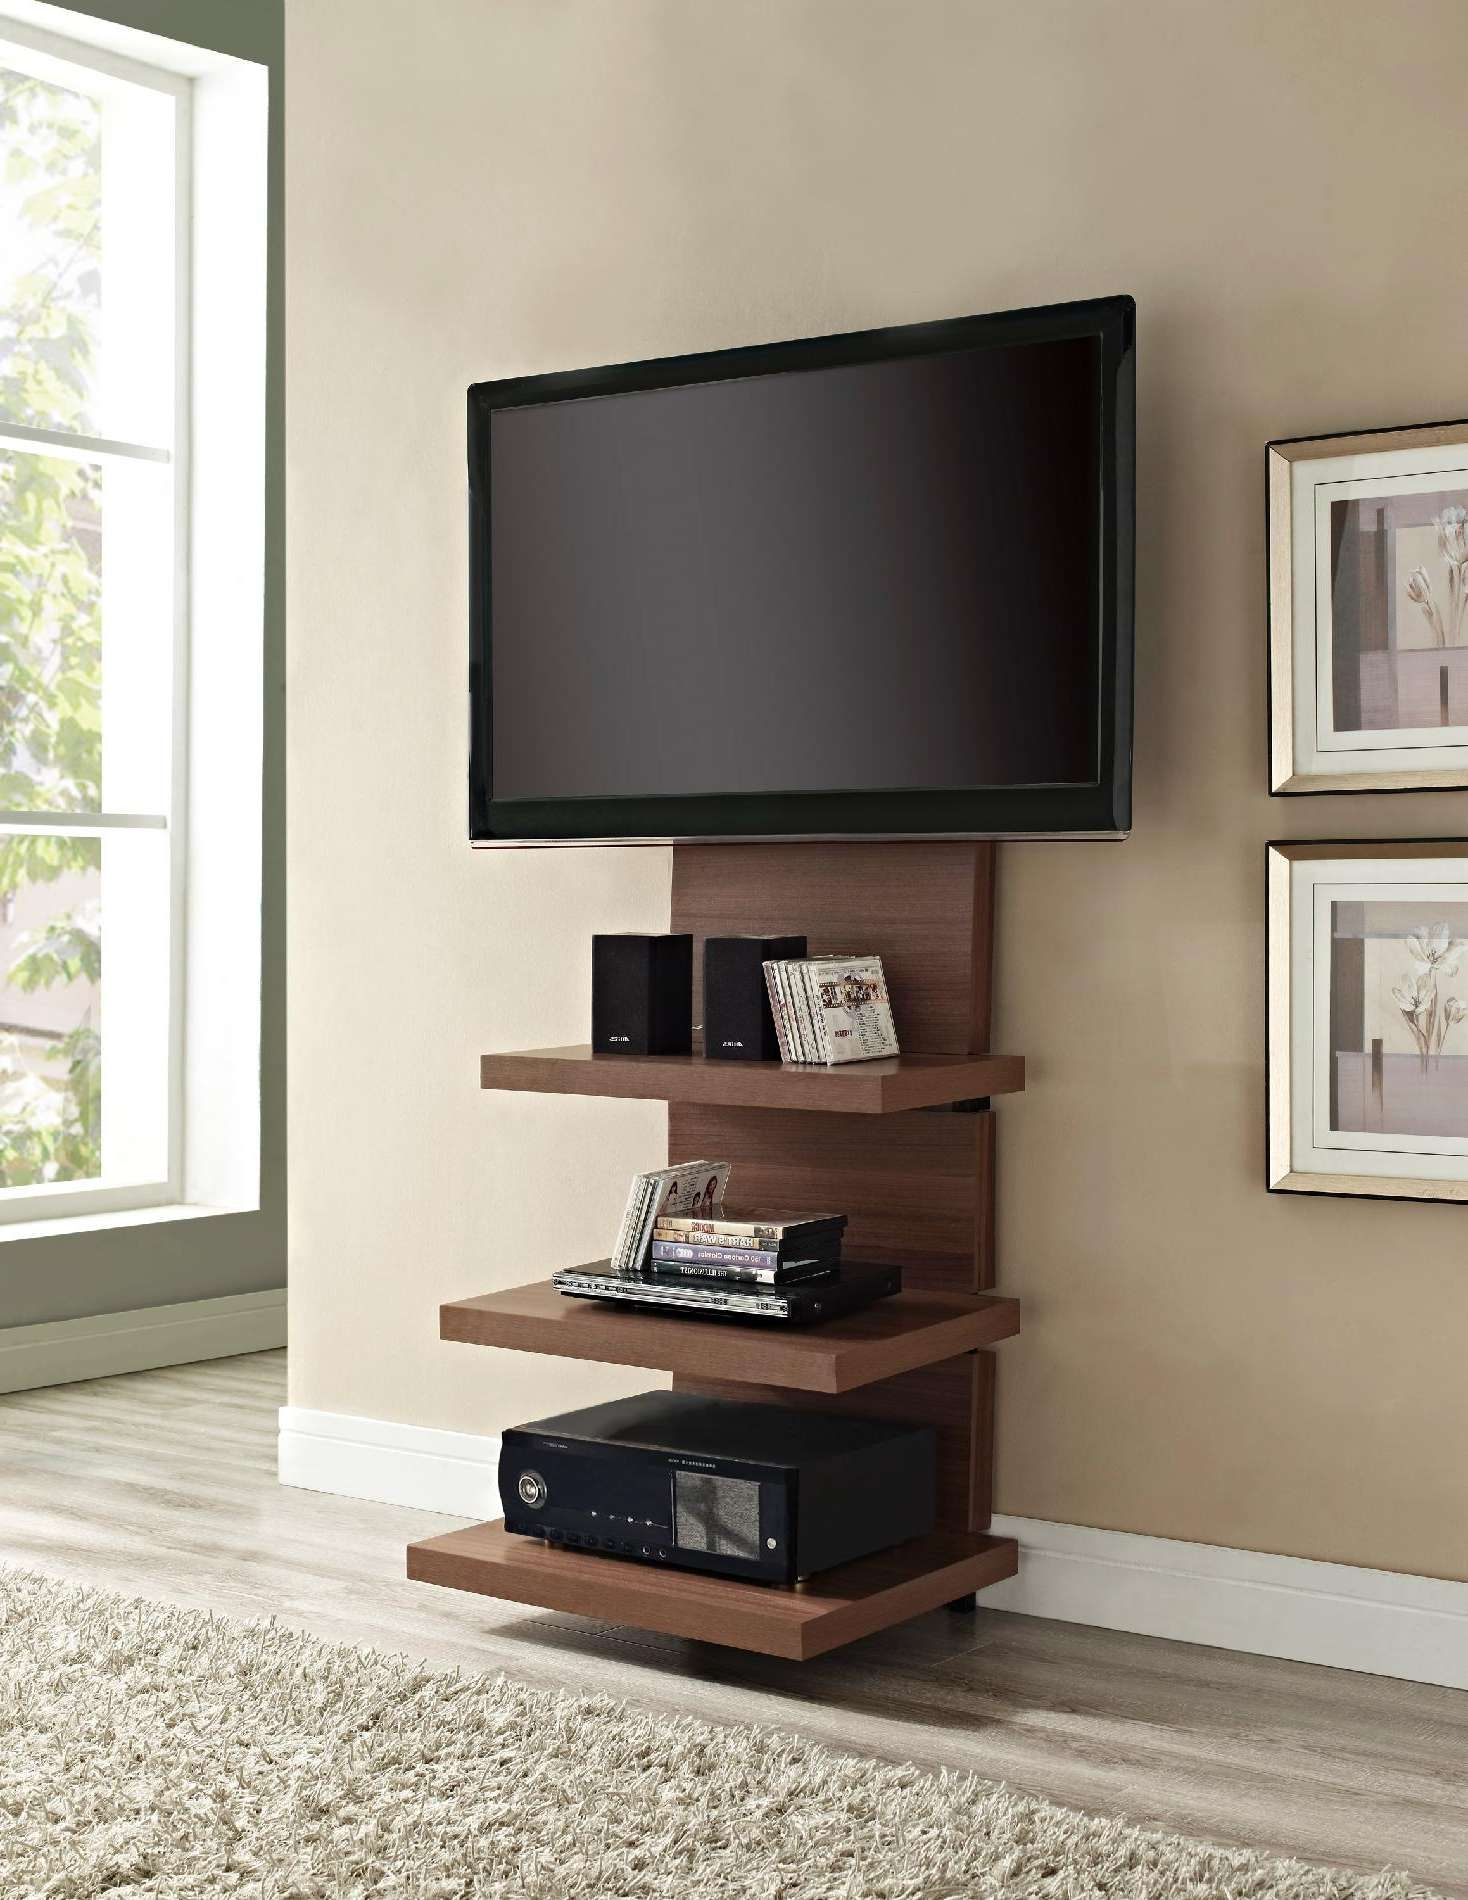 Home Decor: Perfect Tv Stands With Flat Panel Mounts To Complete Pertaining To Modern Wall Mount Tv Stands (View 2 of 15)